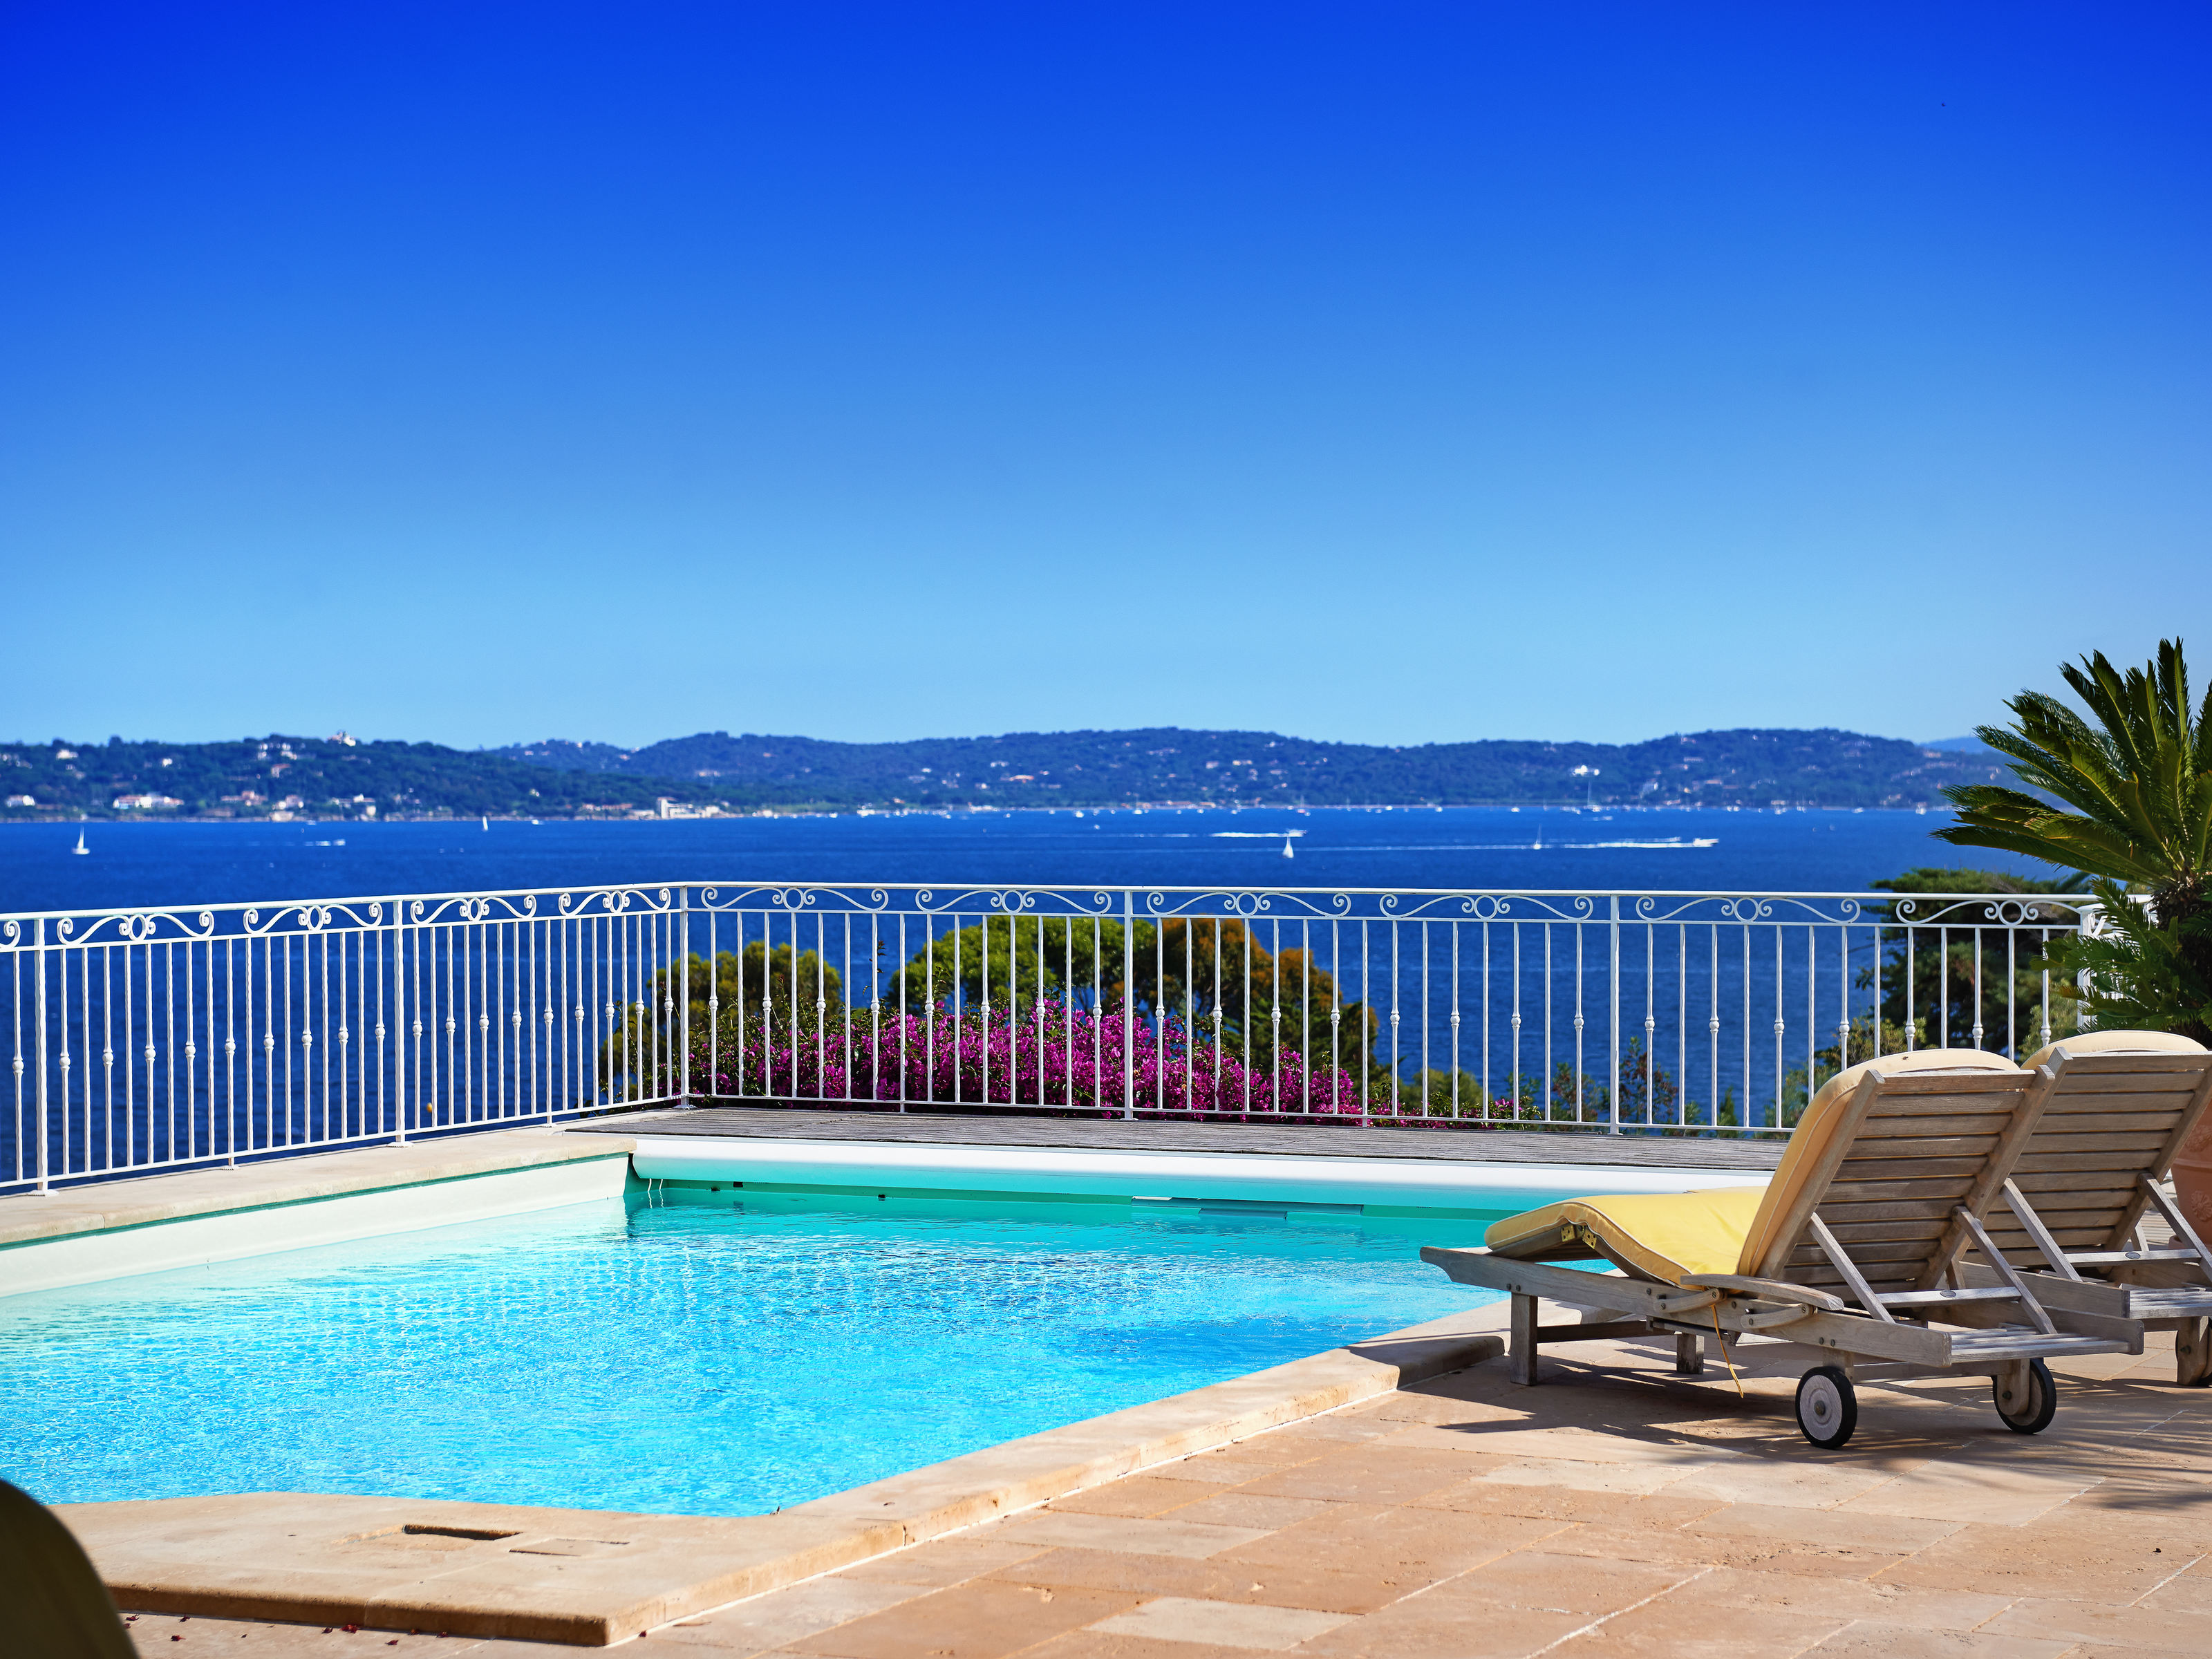 Single Family Home for Sale at Luxurious villa with breathtaking sea views Sainte Maxime, Provence-Alpes-Cote D'Azur 83120 France